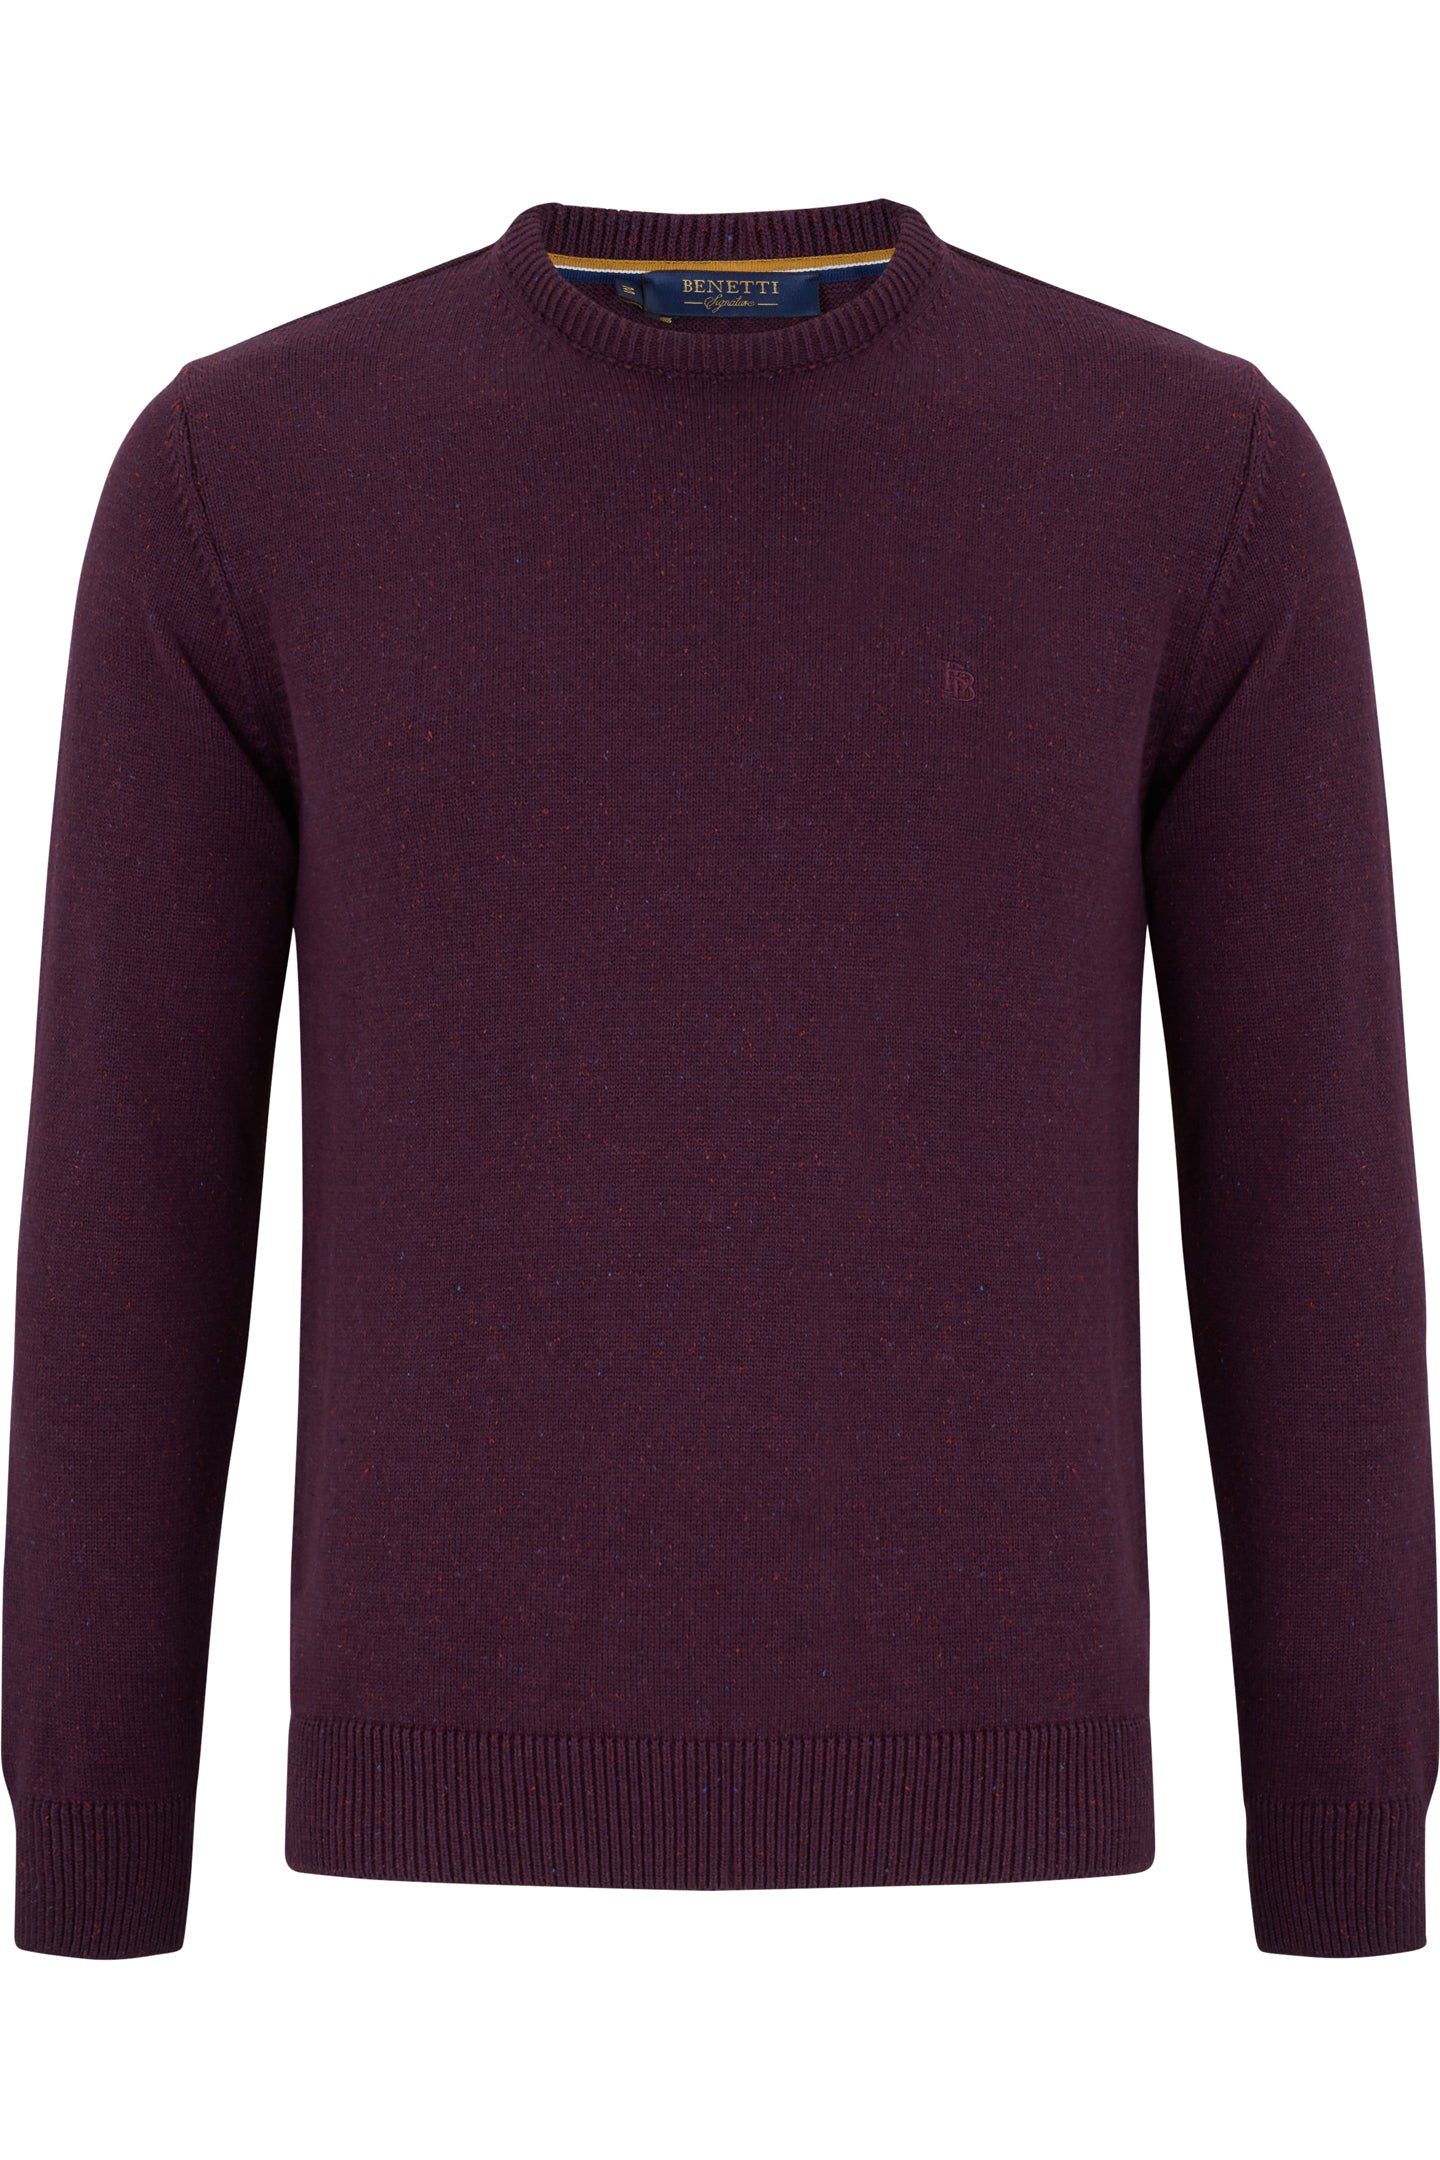 Grape crew neck sweater